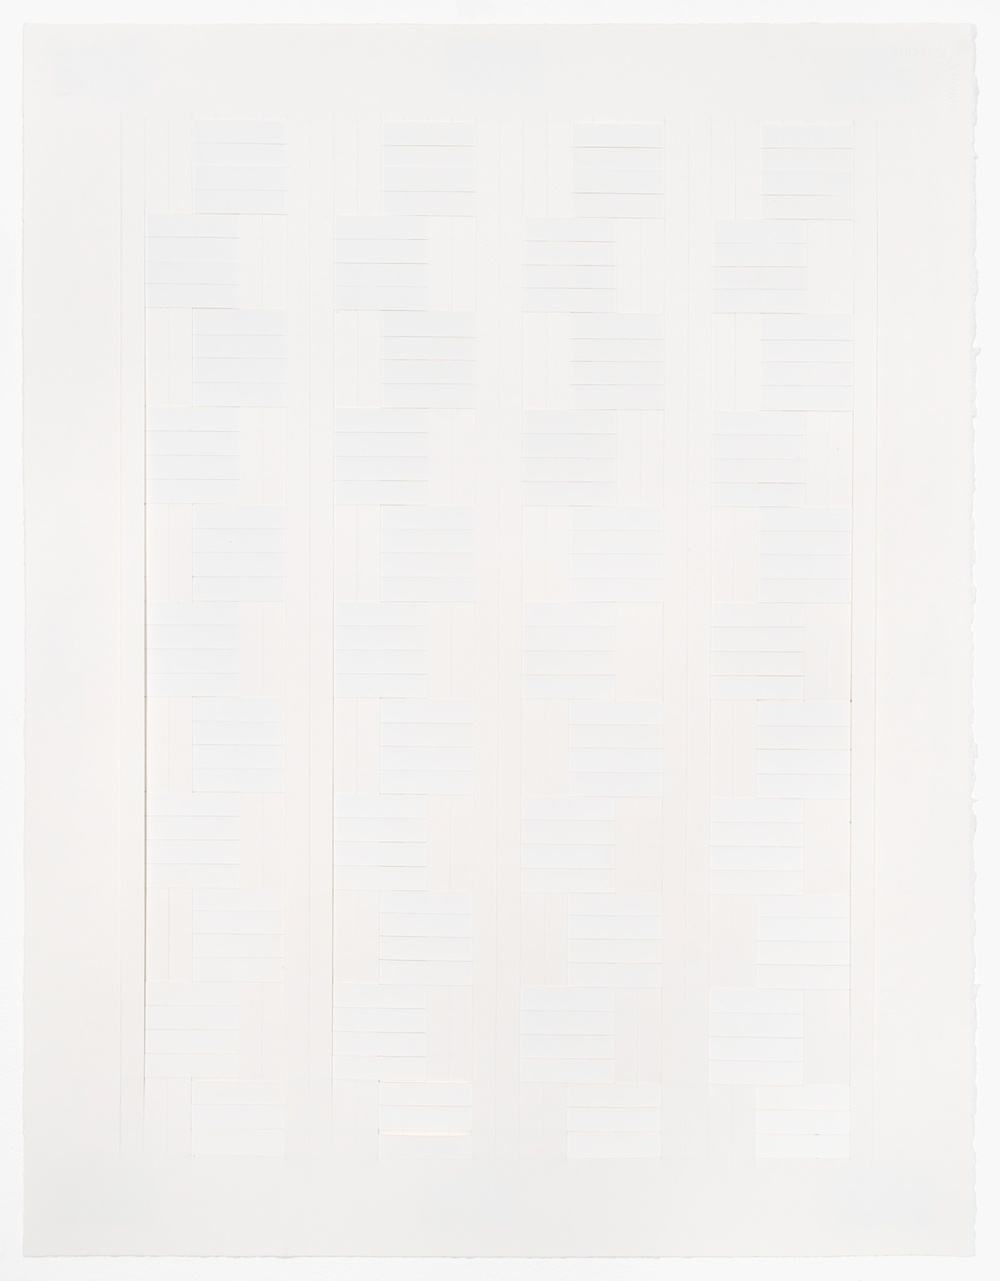 Michelle Graber  Untitled  2003 Paper and Color-aid 26h x 20w in MGrab202